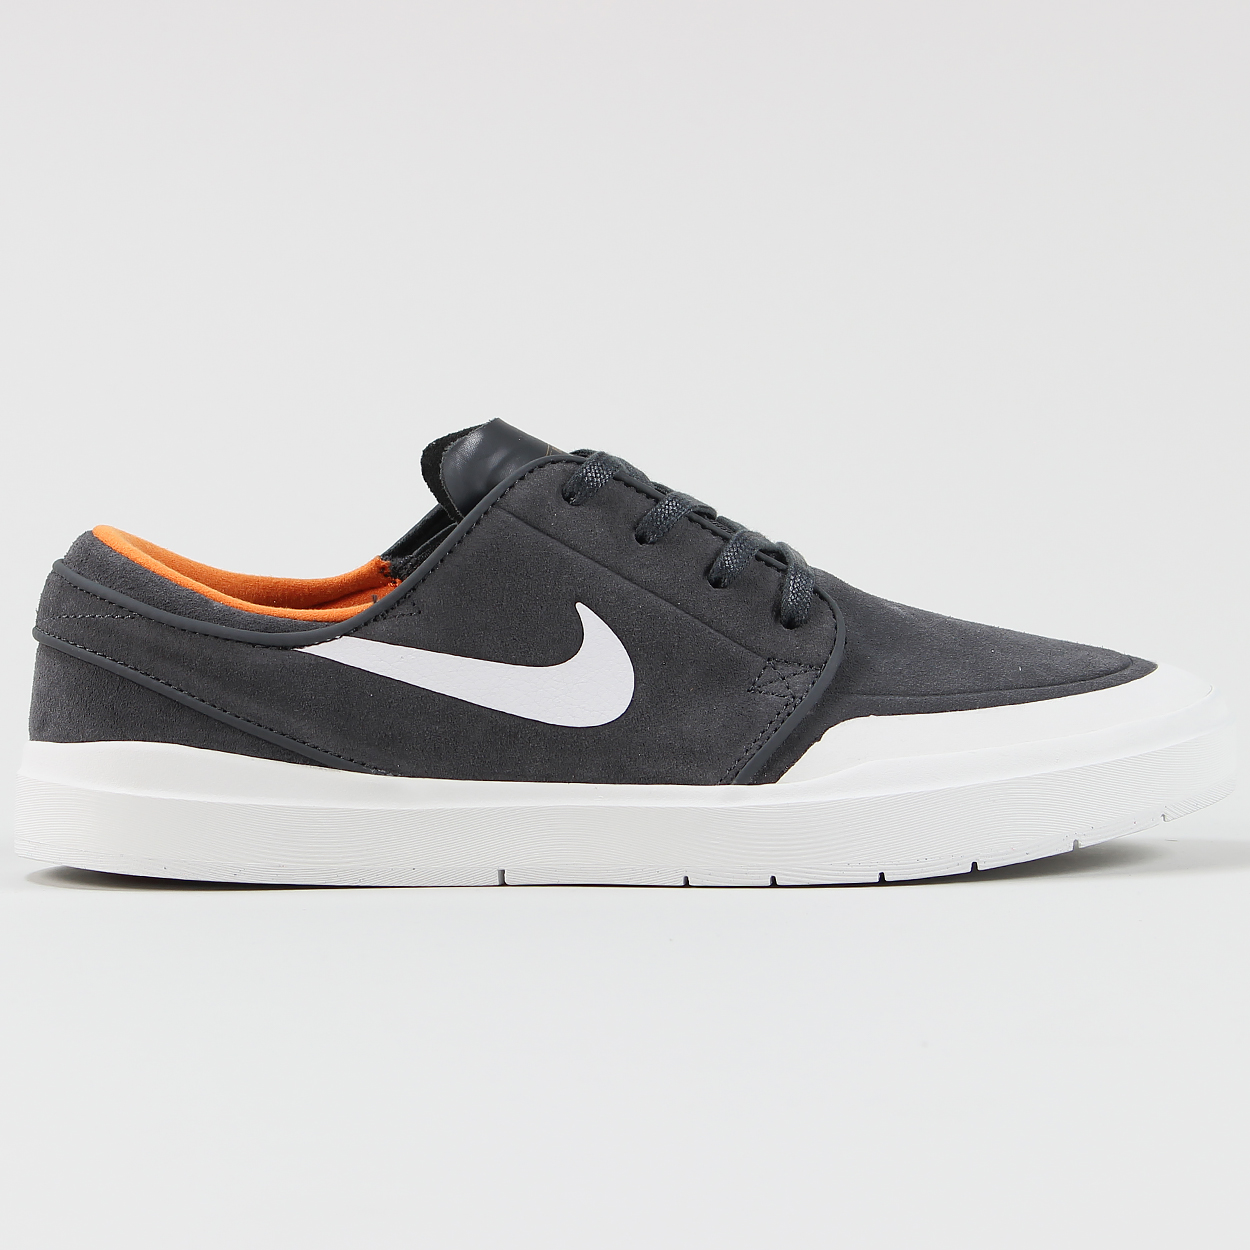 more photos 61984 534fc ... ireland nike sb mens janoski pro hyperfeel xt trainers anthracite white  60.00 66901 1380c